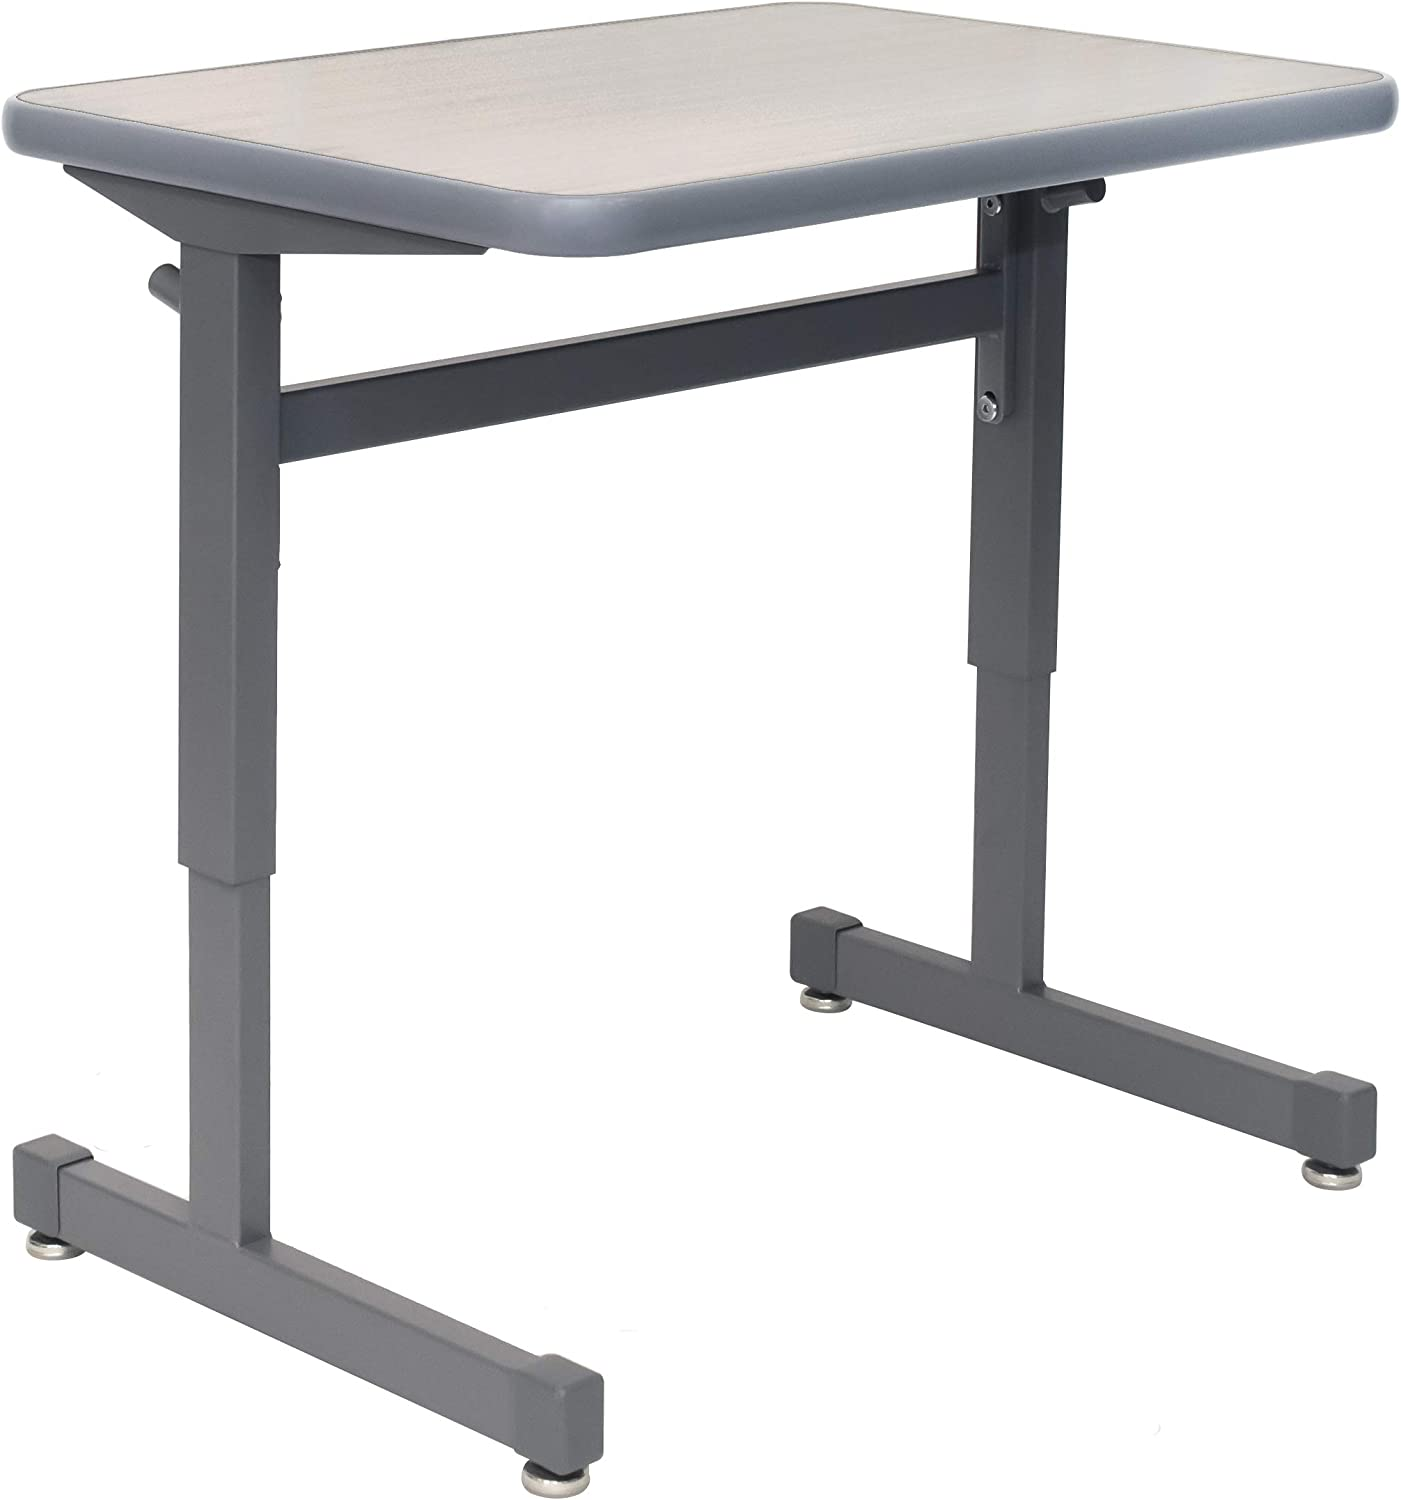 Cerulean Blue Smith System OODLE31 Oodle Active Seating Adjustable Height Stool